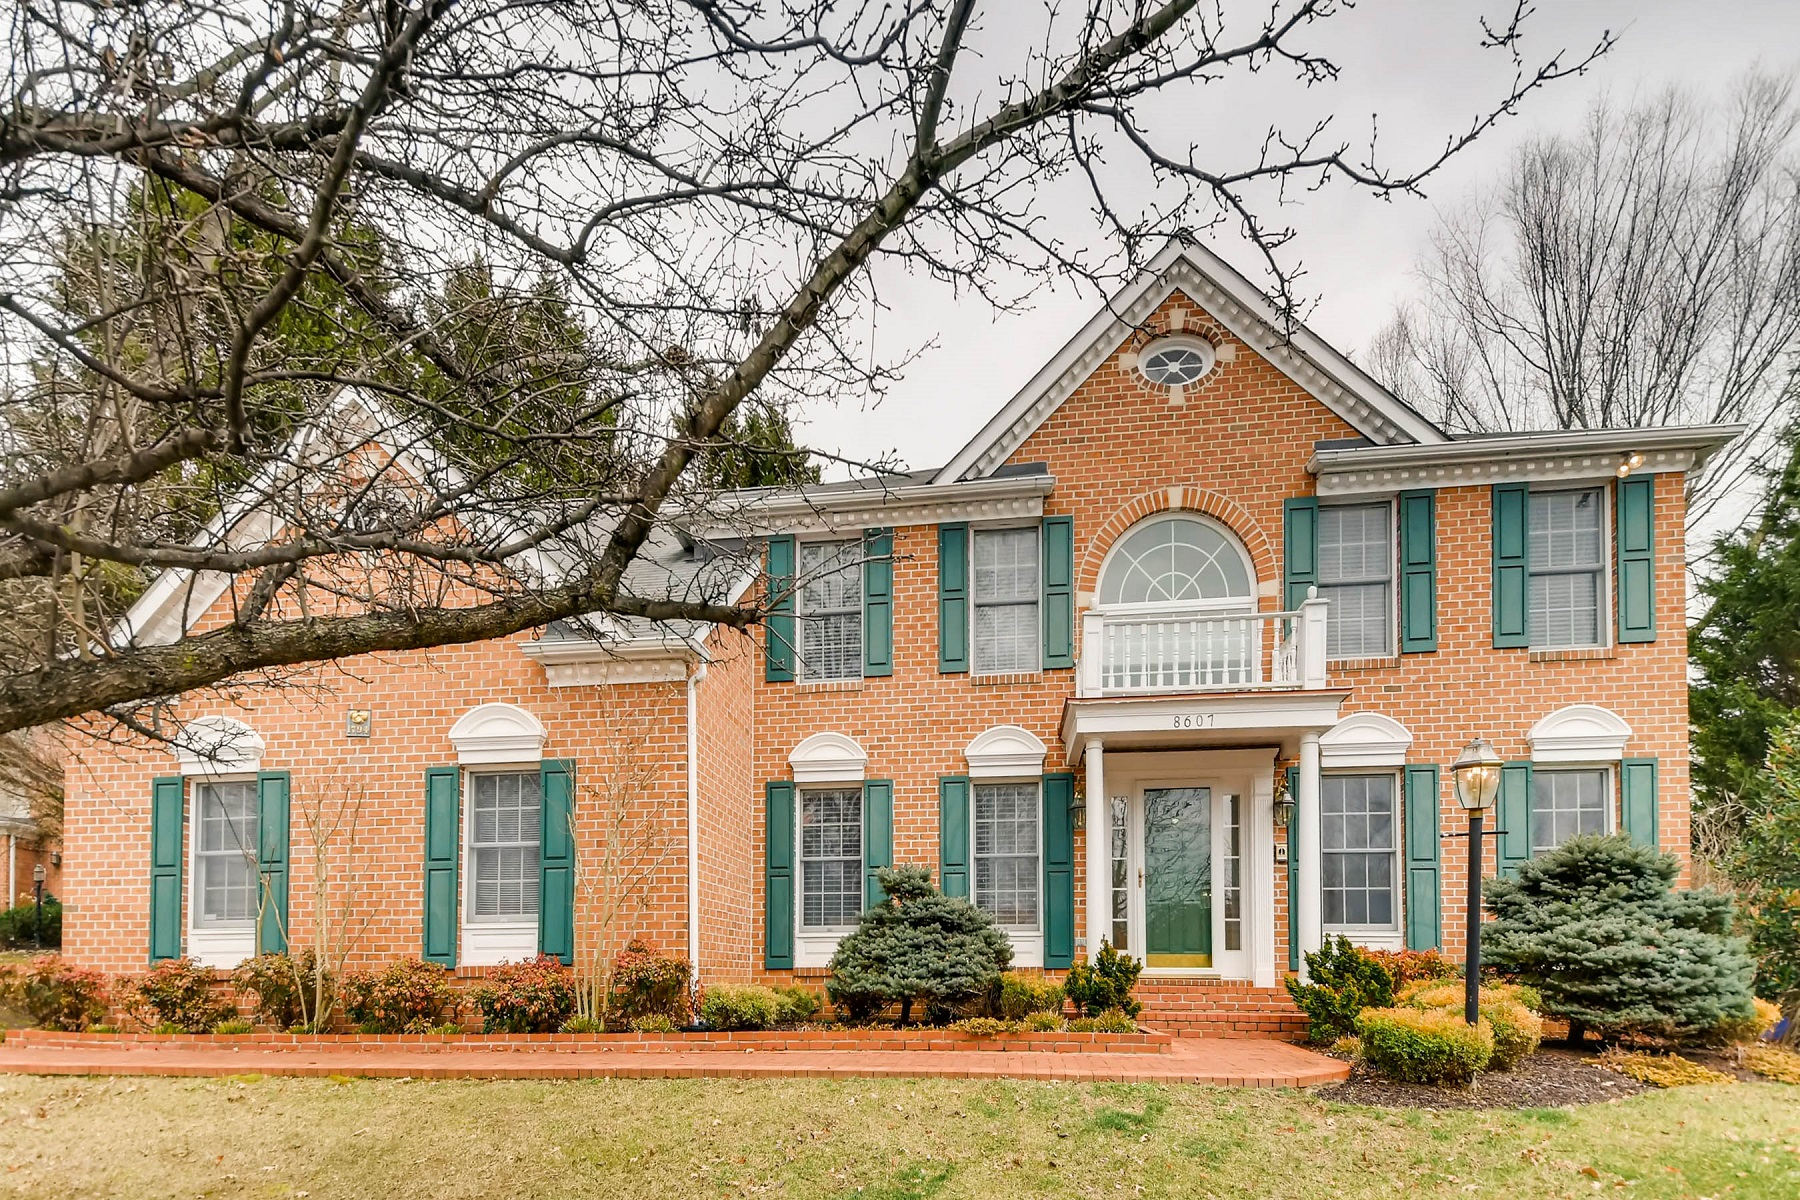 Single Family Home for Sale at Seminary Overlook 8607 Countrybrooke Way, Lutherville Timonium, Maryland, 21093 United States